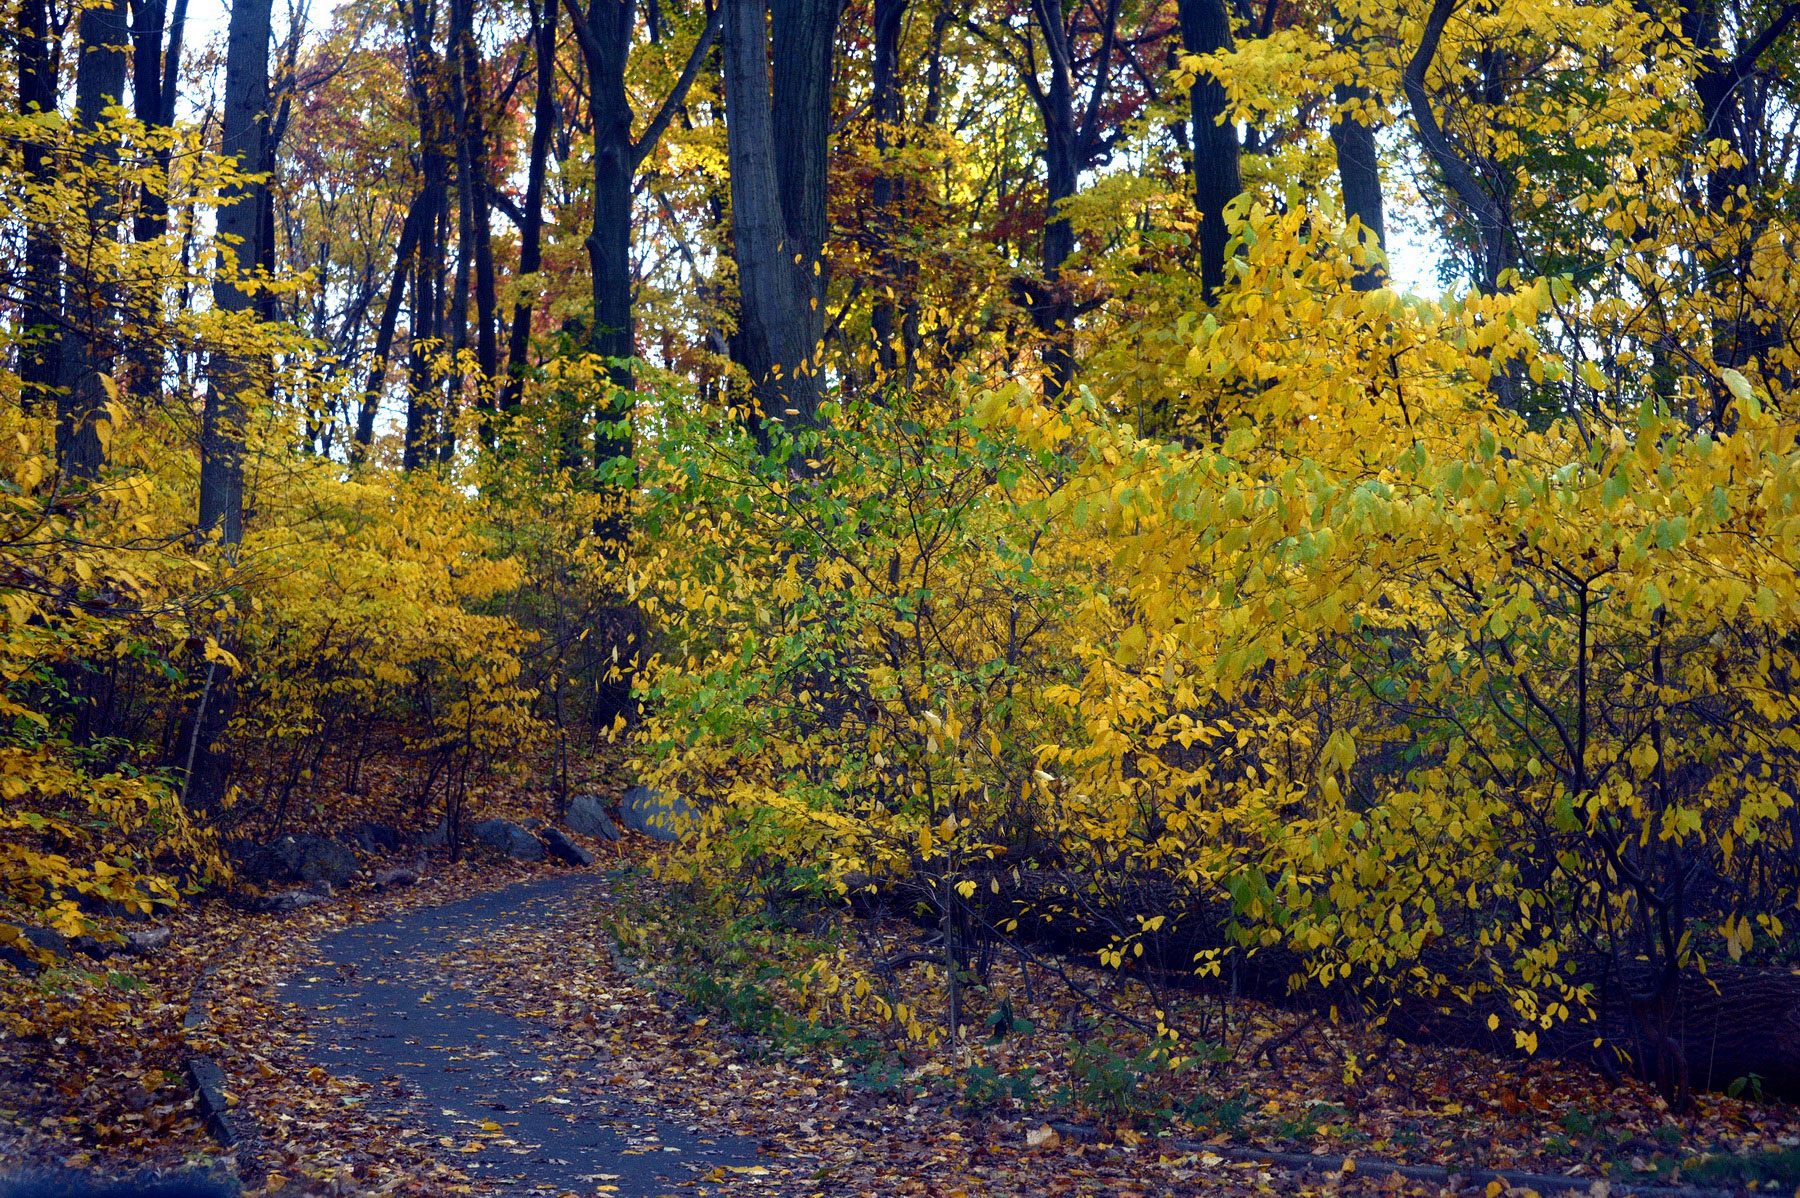 5 Hiking Trails In New York City To Check Out This Fall